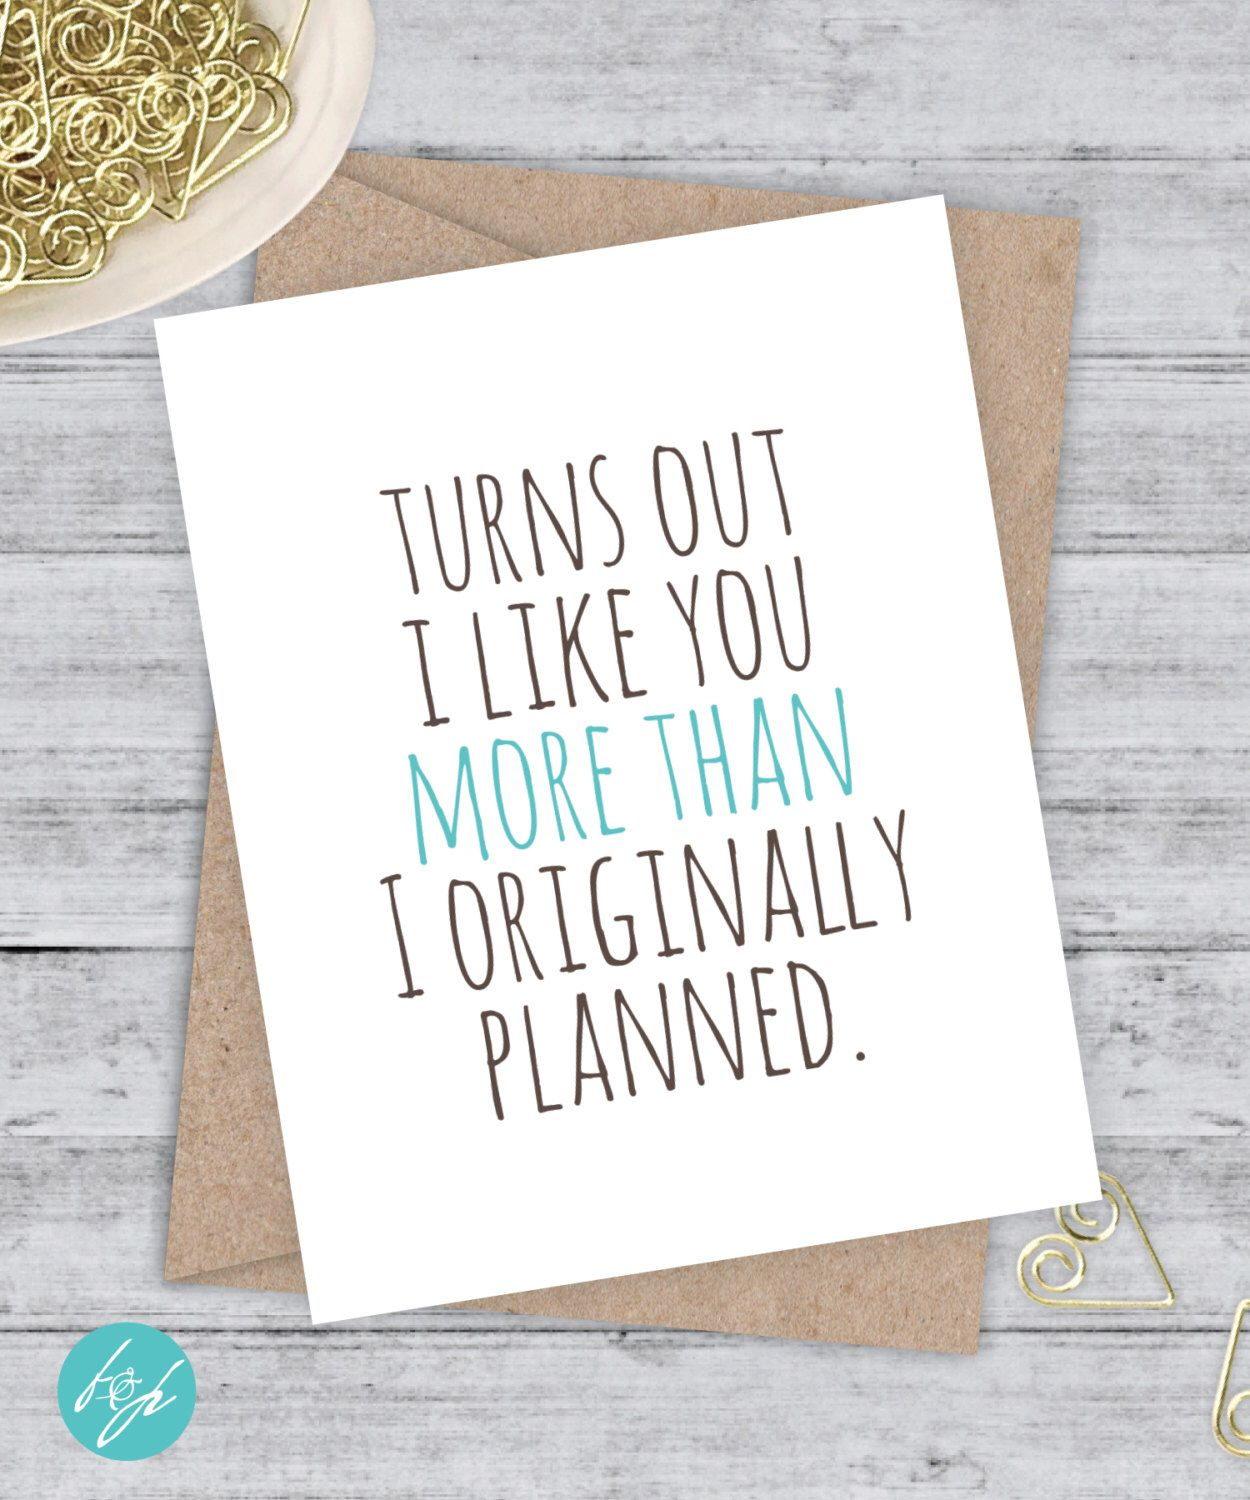 I love you card Boyfriend Card Awkward Card Snarky Card Quirky Greeting Card, Funny Birthday - I like you more than I originally planned by FlairandPaper on Etsy https://www.etsy.com/listing/245840612/i-love-you-card-boyfriend-card-awkward